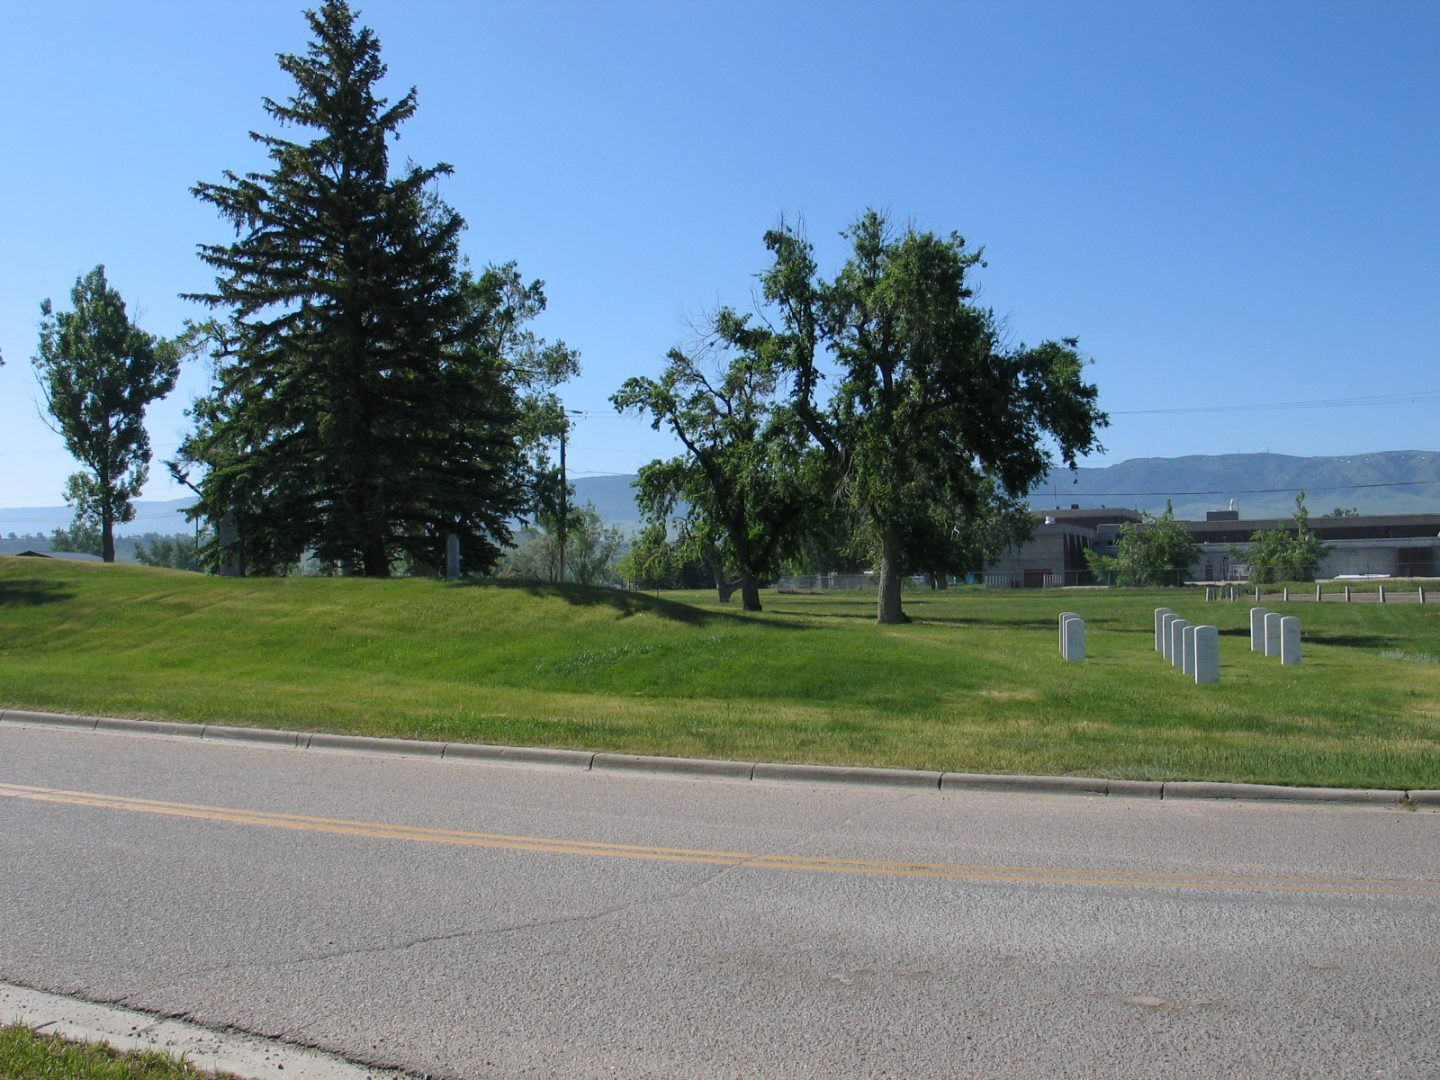 Image of FTC Cemetery 1